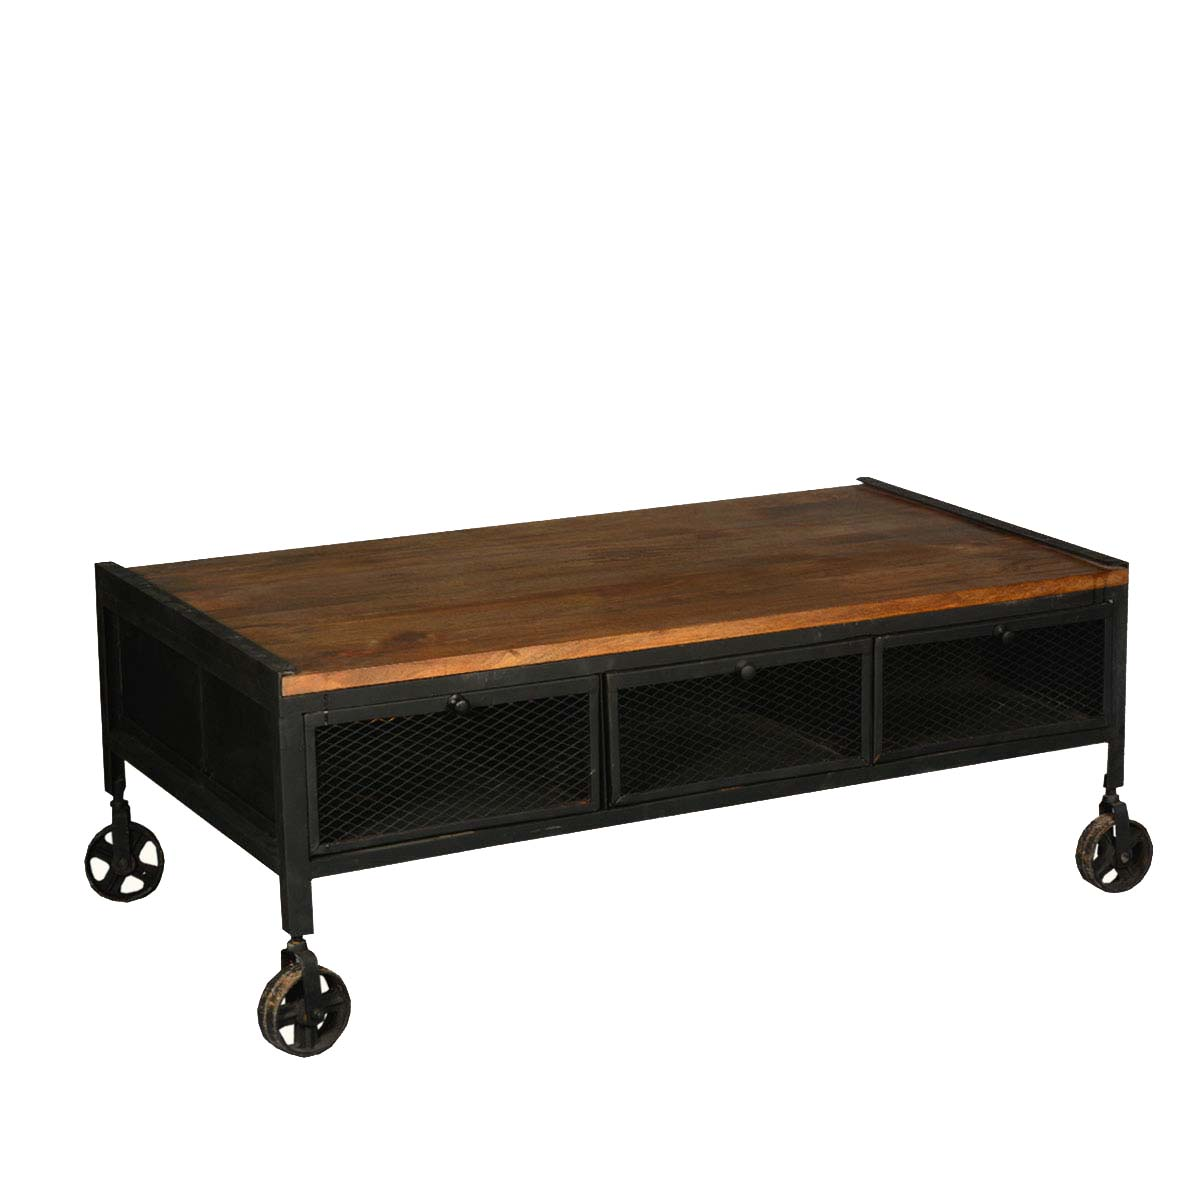 Industrial Coffee Table Images: Aiden Industrial Rustic Coffee Table With Drawers